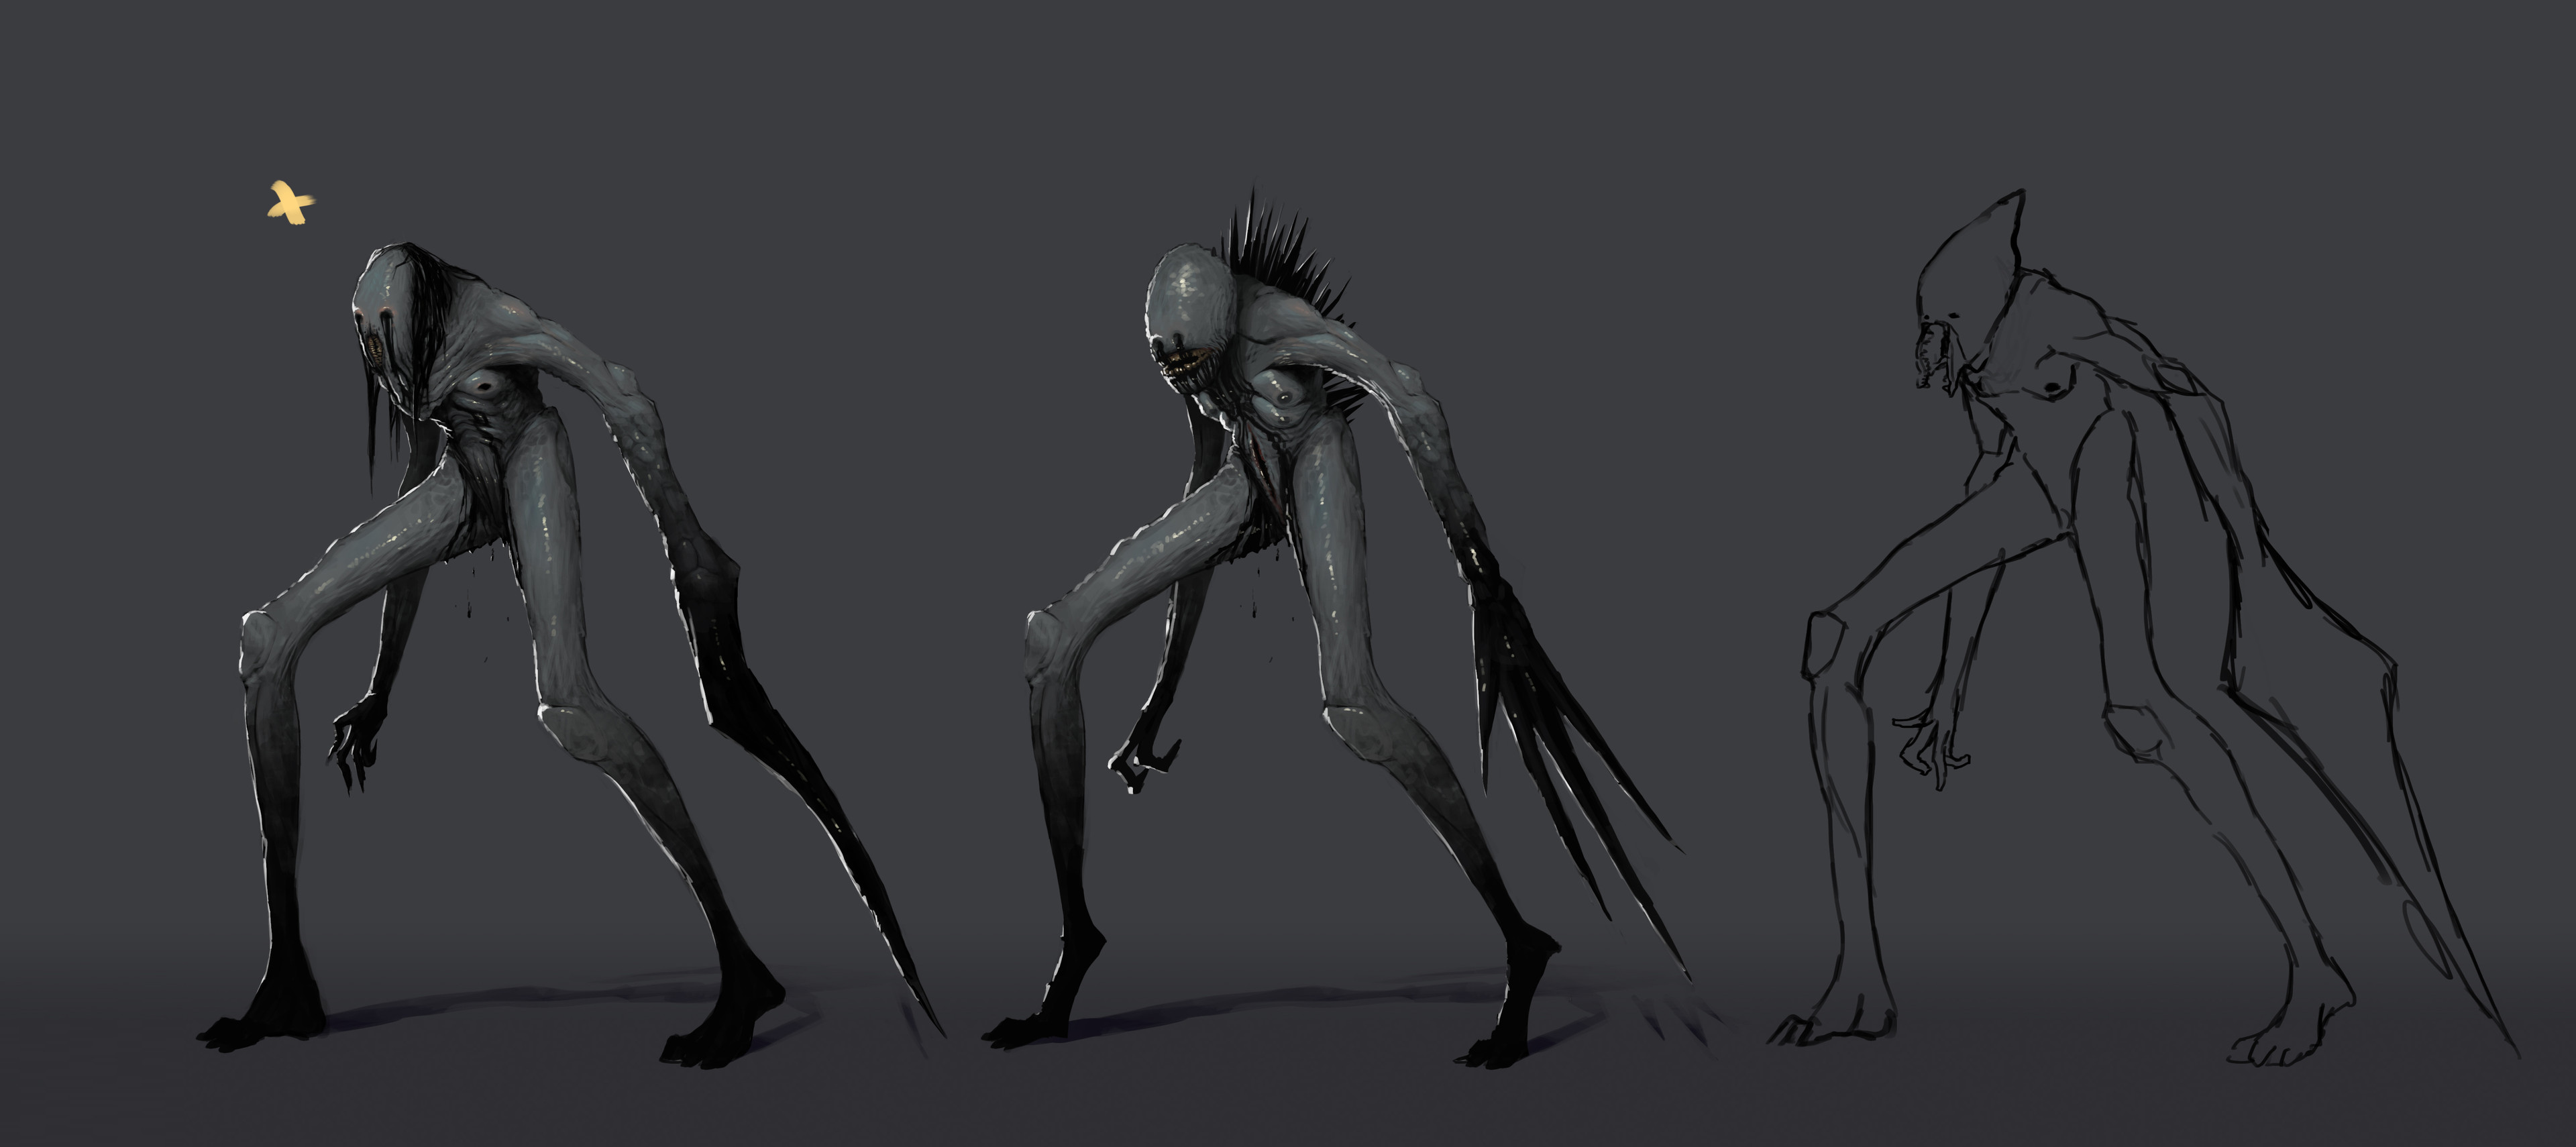 Character iterations